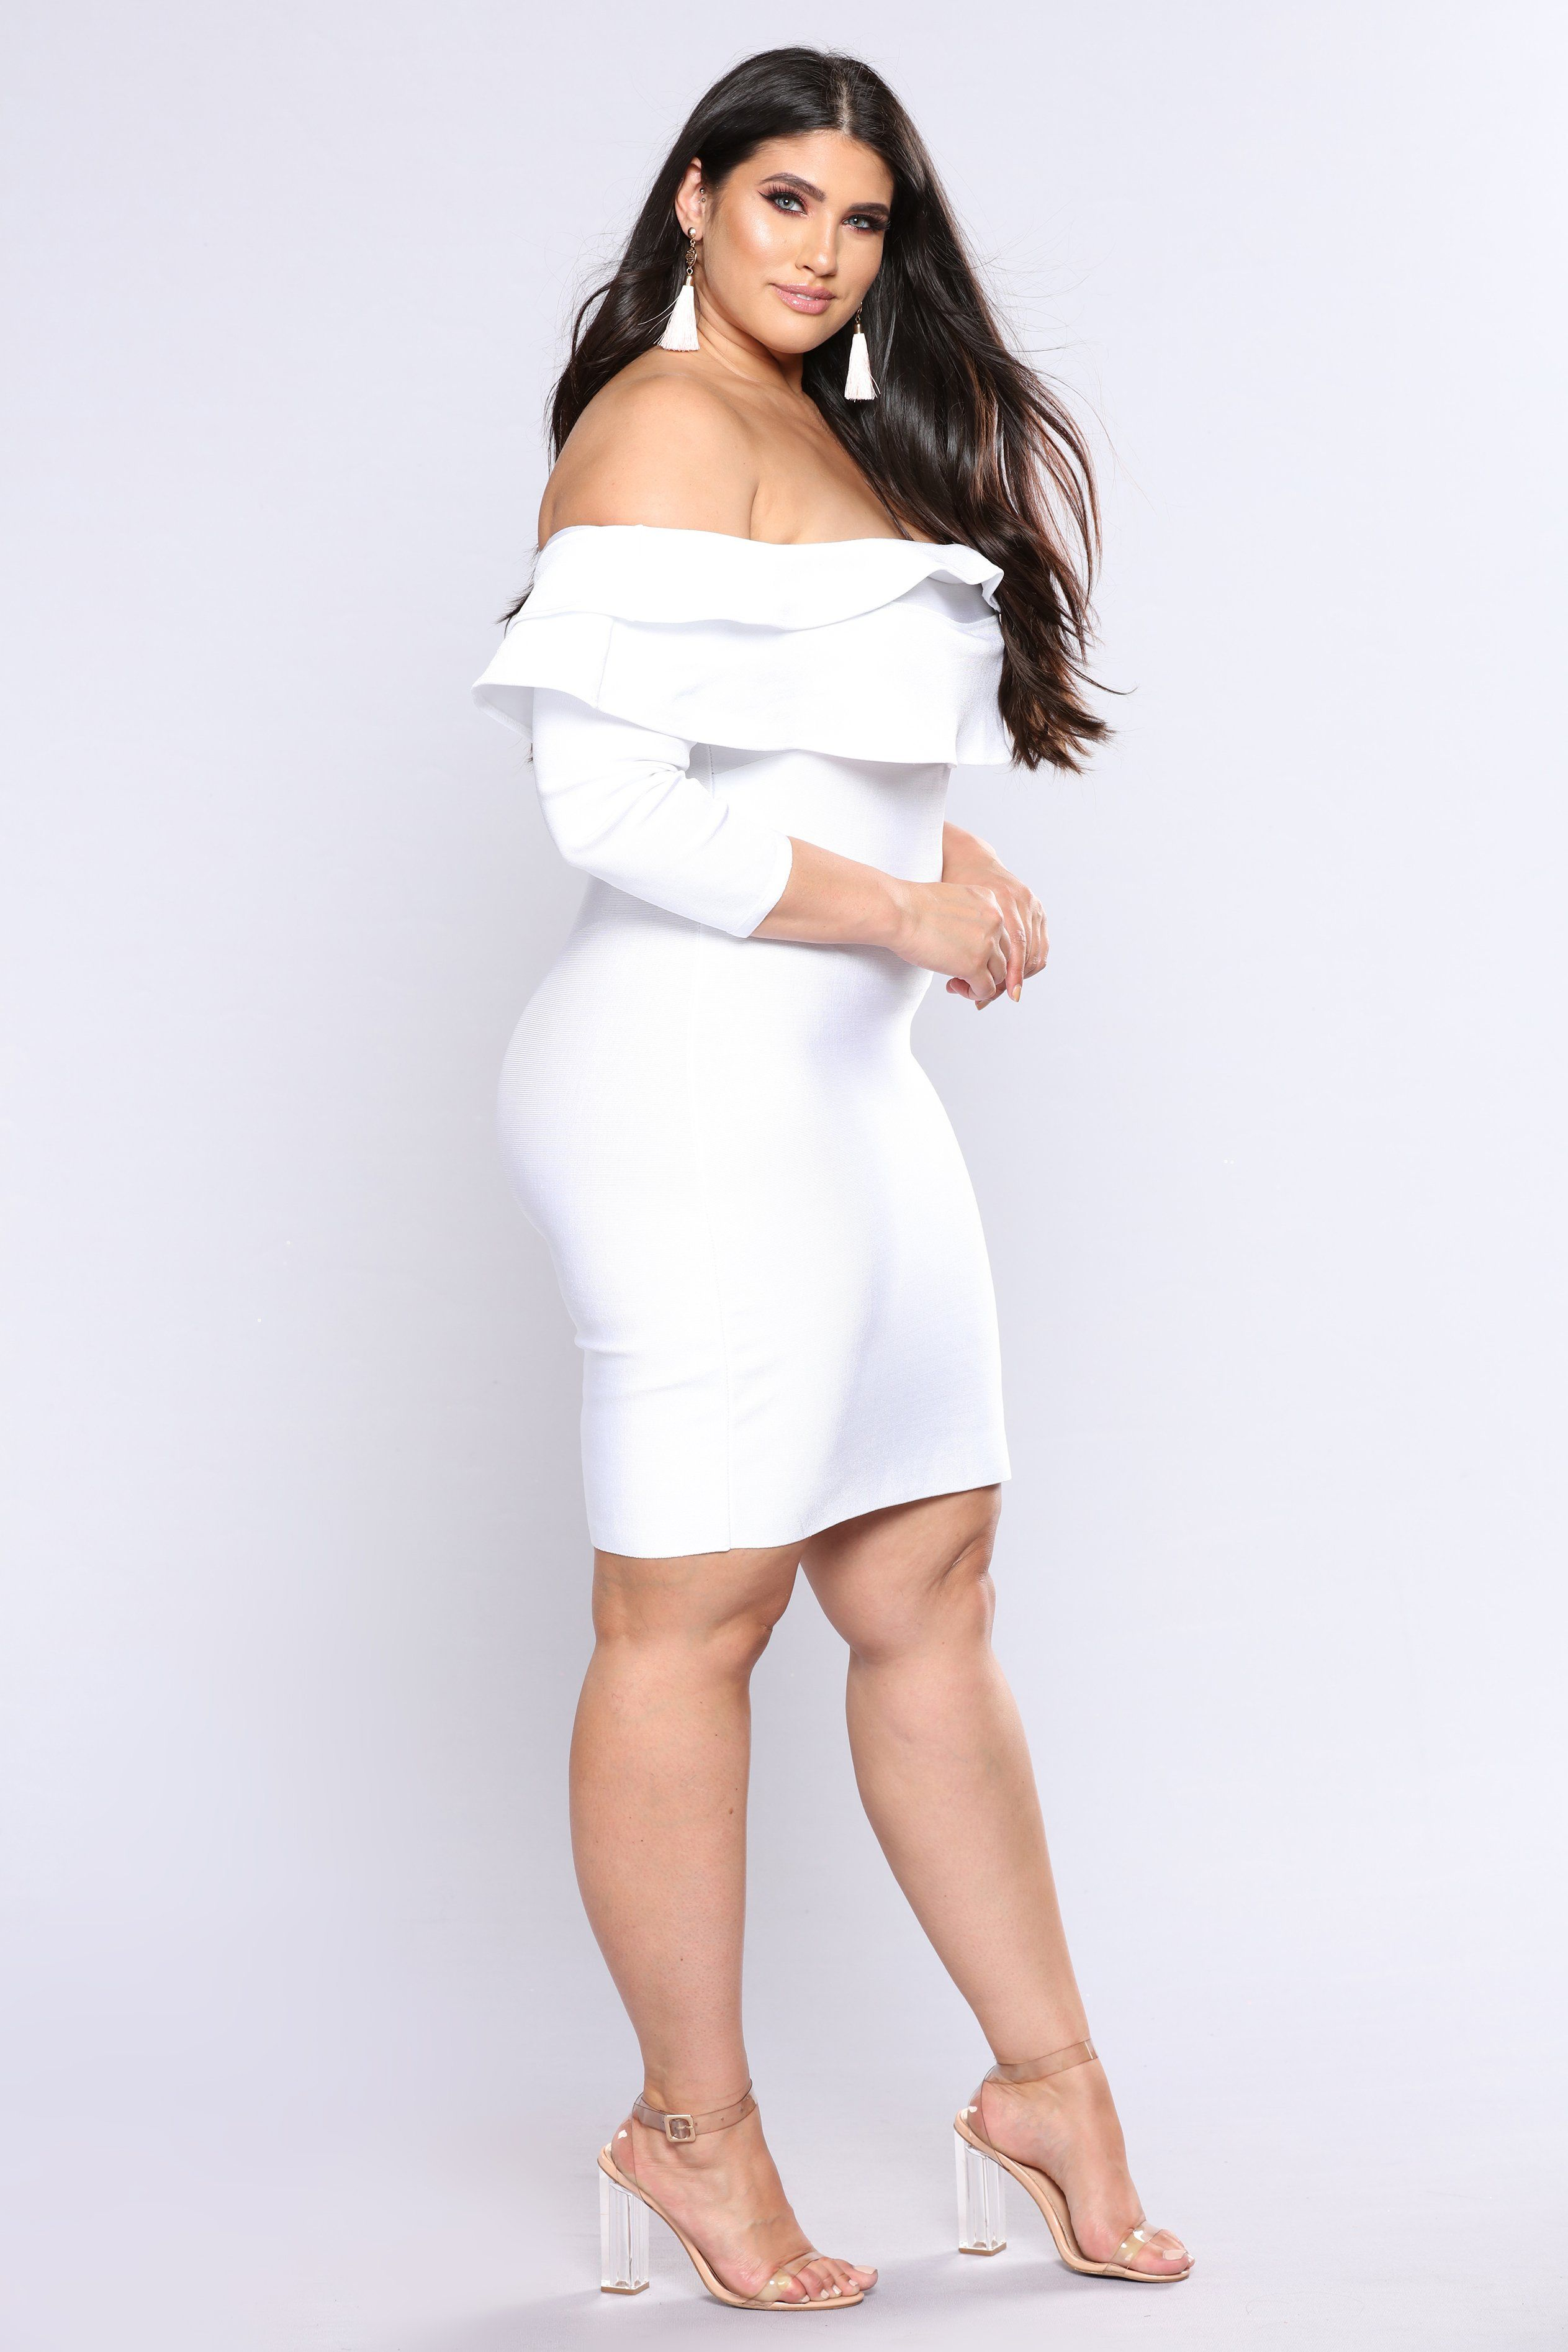 Anastasia Bandage Dress - White | White bandage dress, White ...